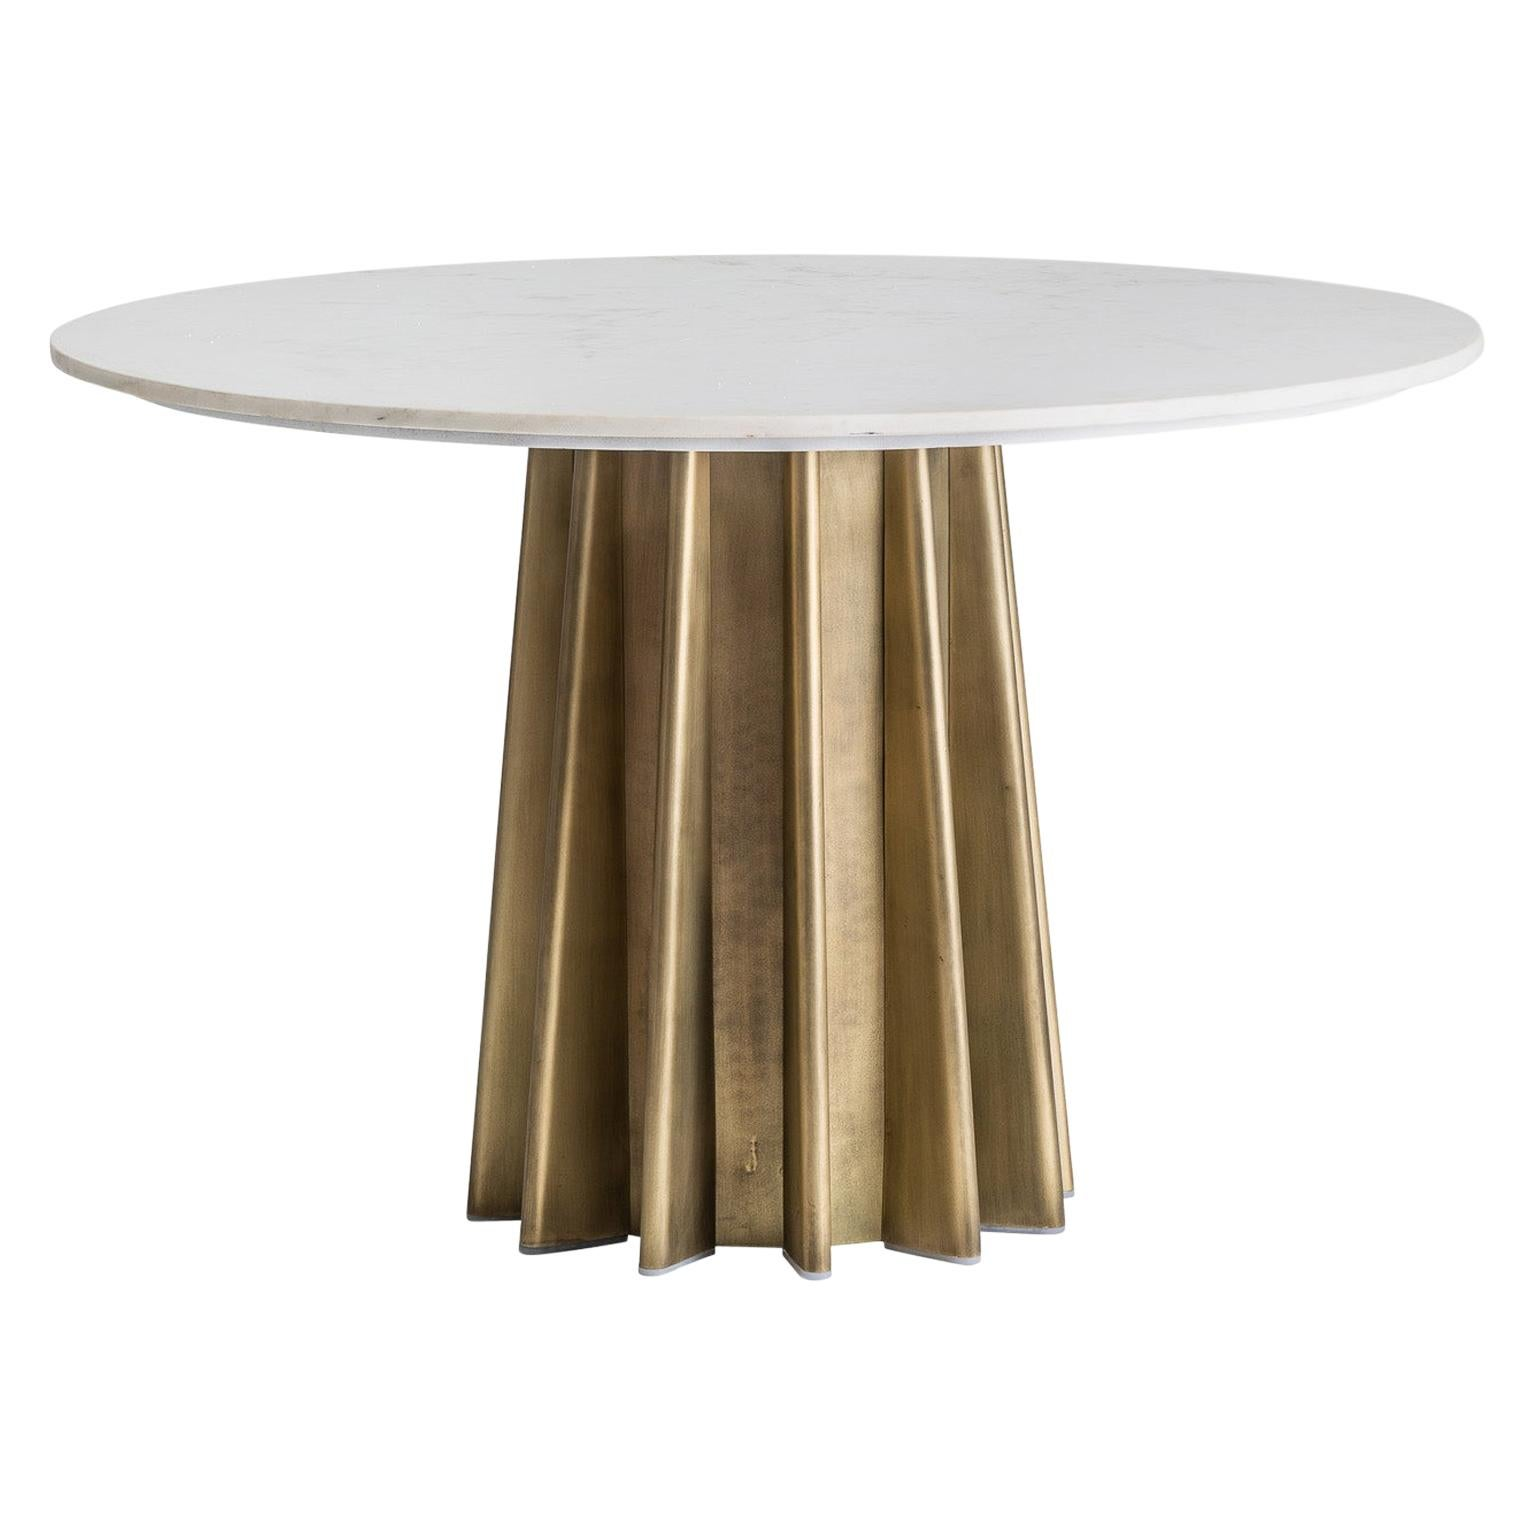 1970s Italian Design Style Round Marble and Metal Pedestal Table